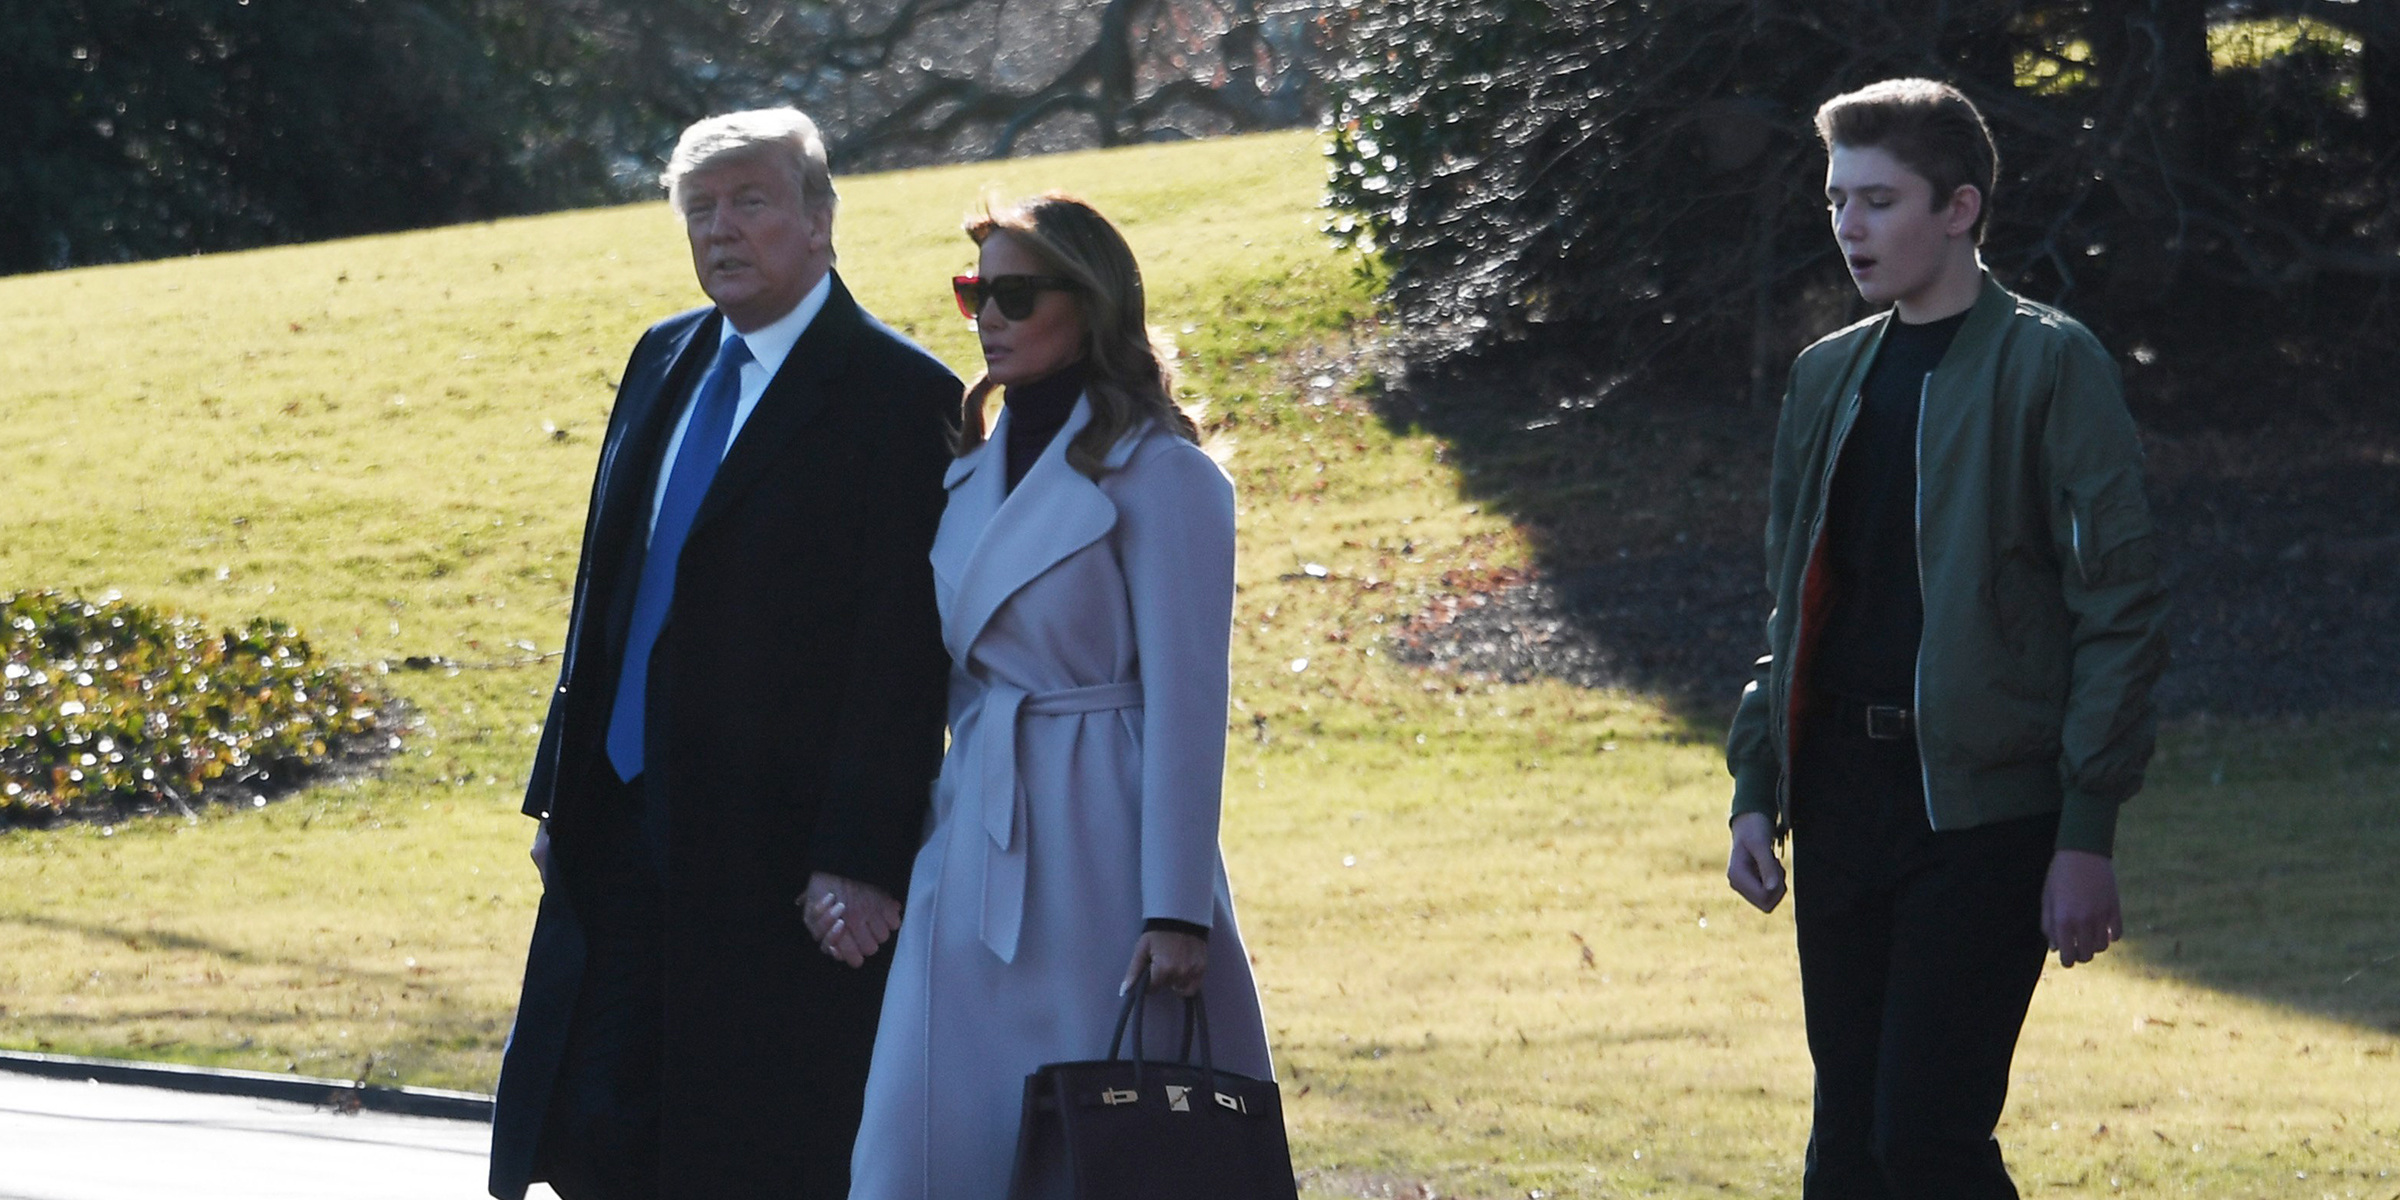 Barron Trump Appears To Be Taller Than Both His Parents In New Photos